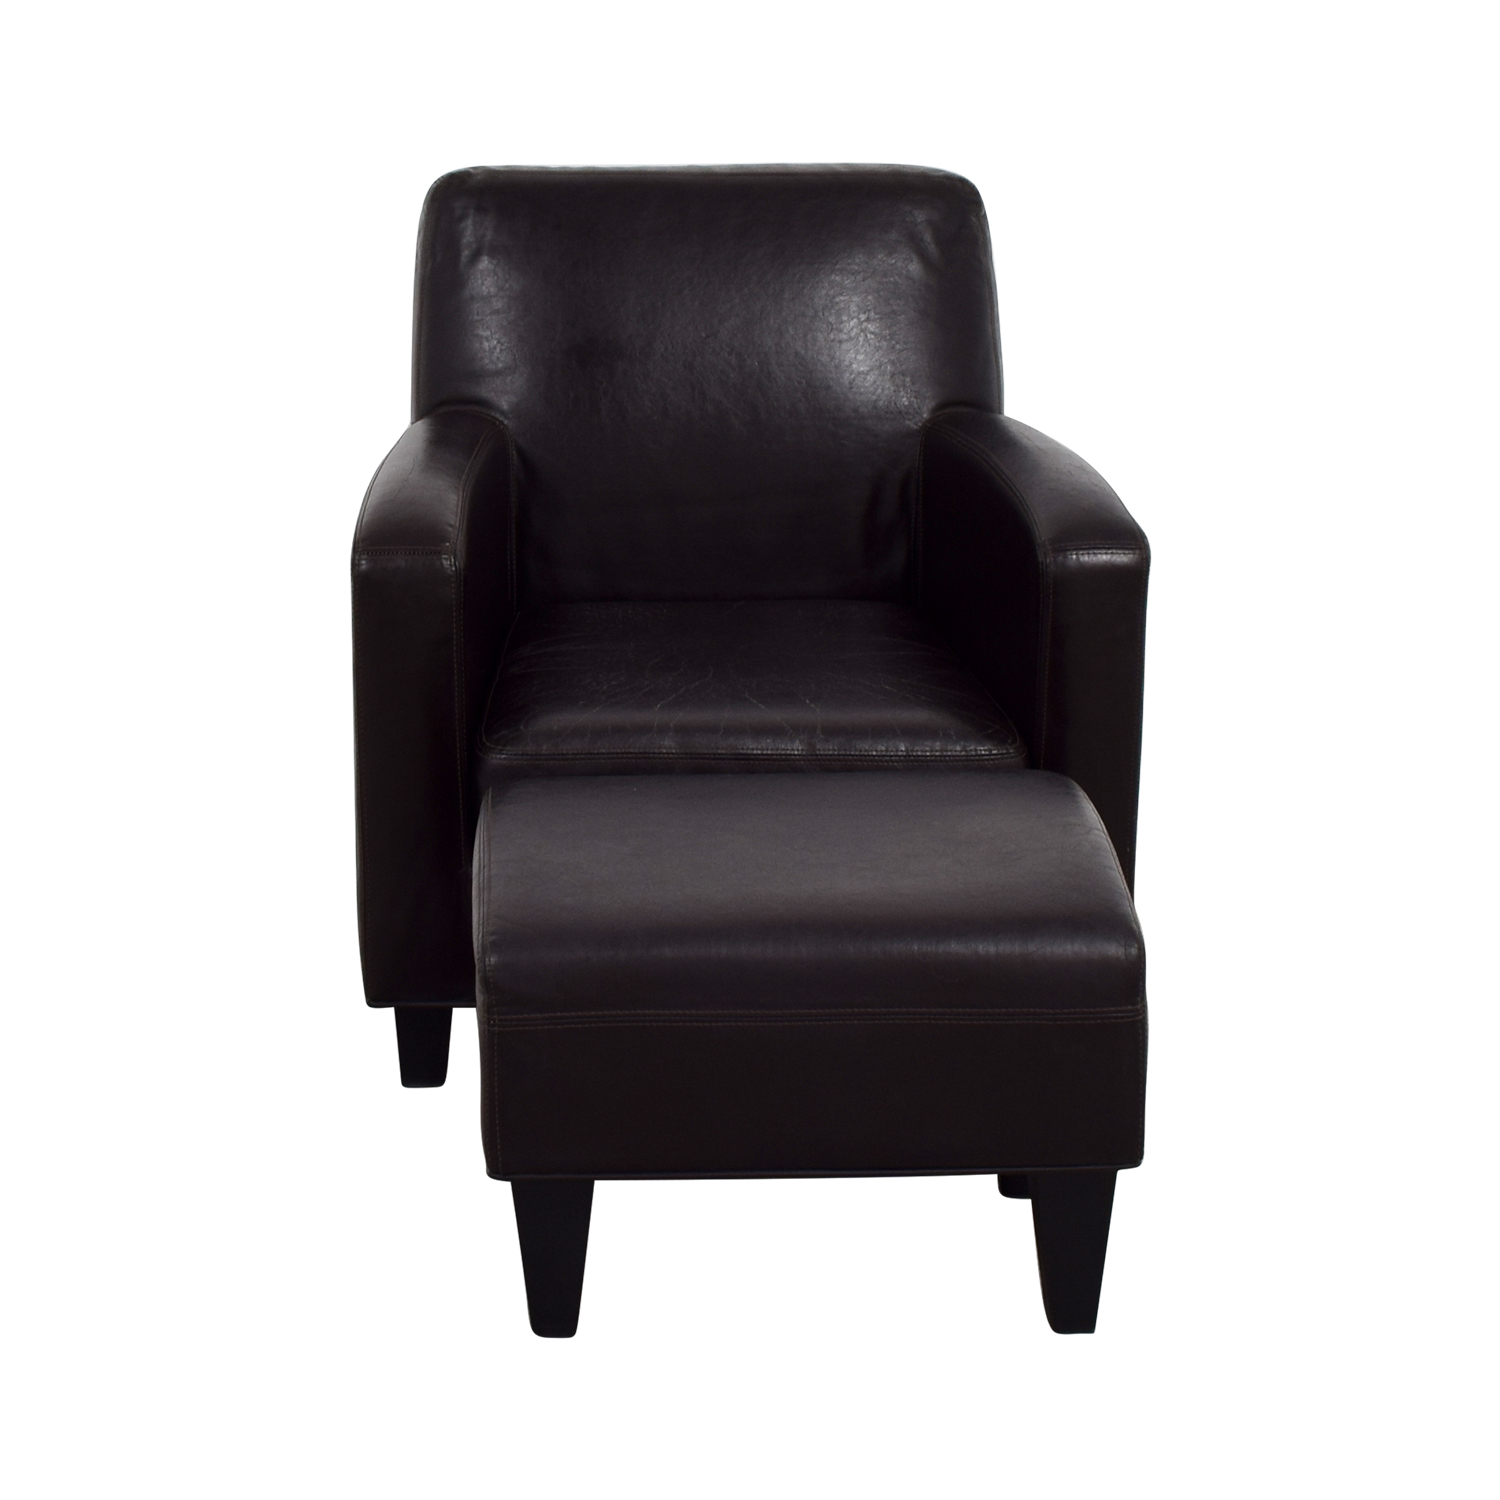 Beau IKEA IKEA Bonded Brown Leather Chair And Ottoman On Sale ...